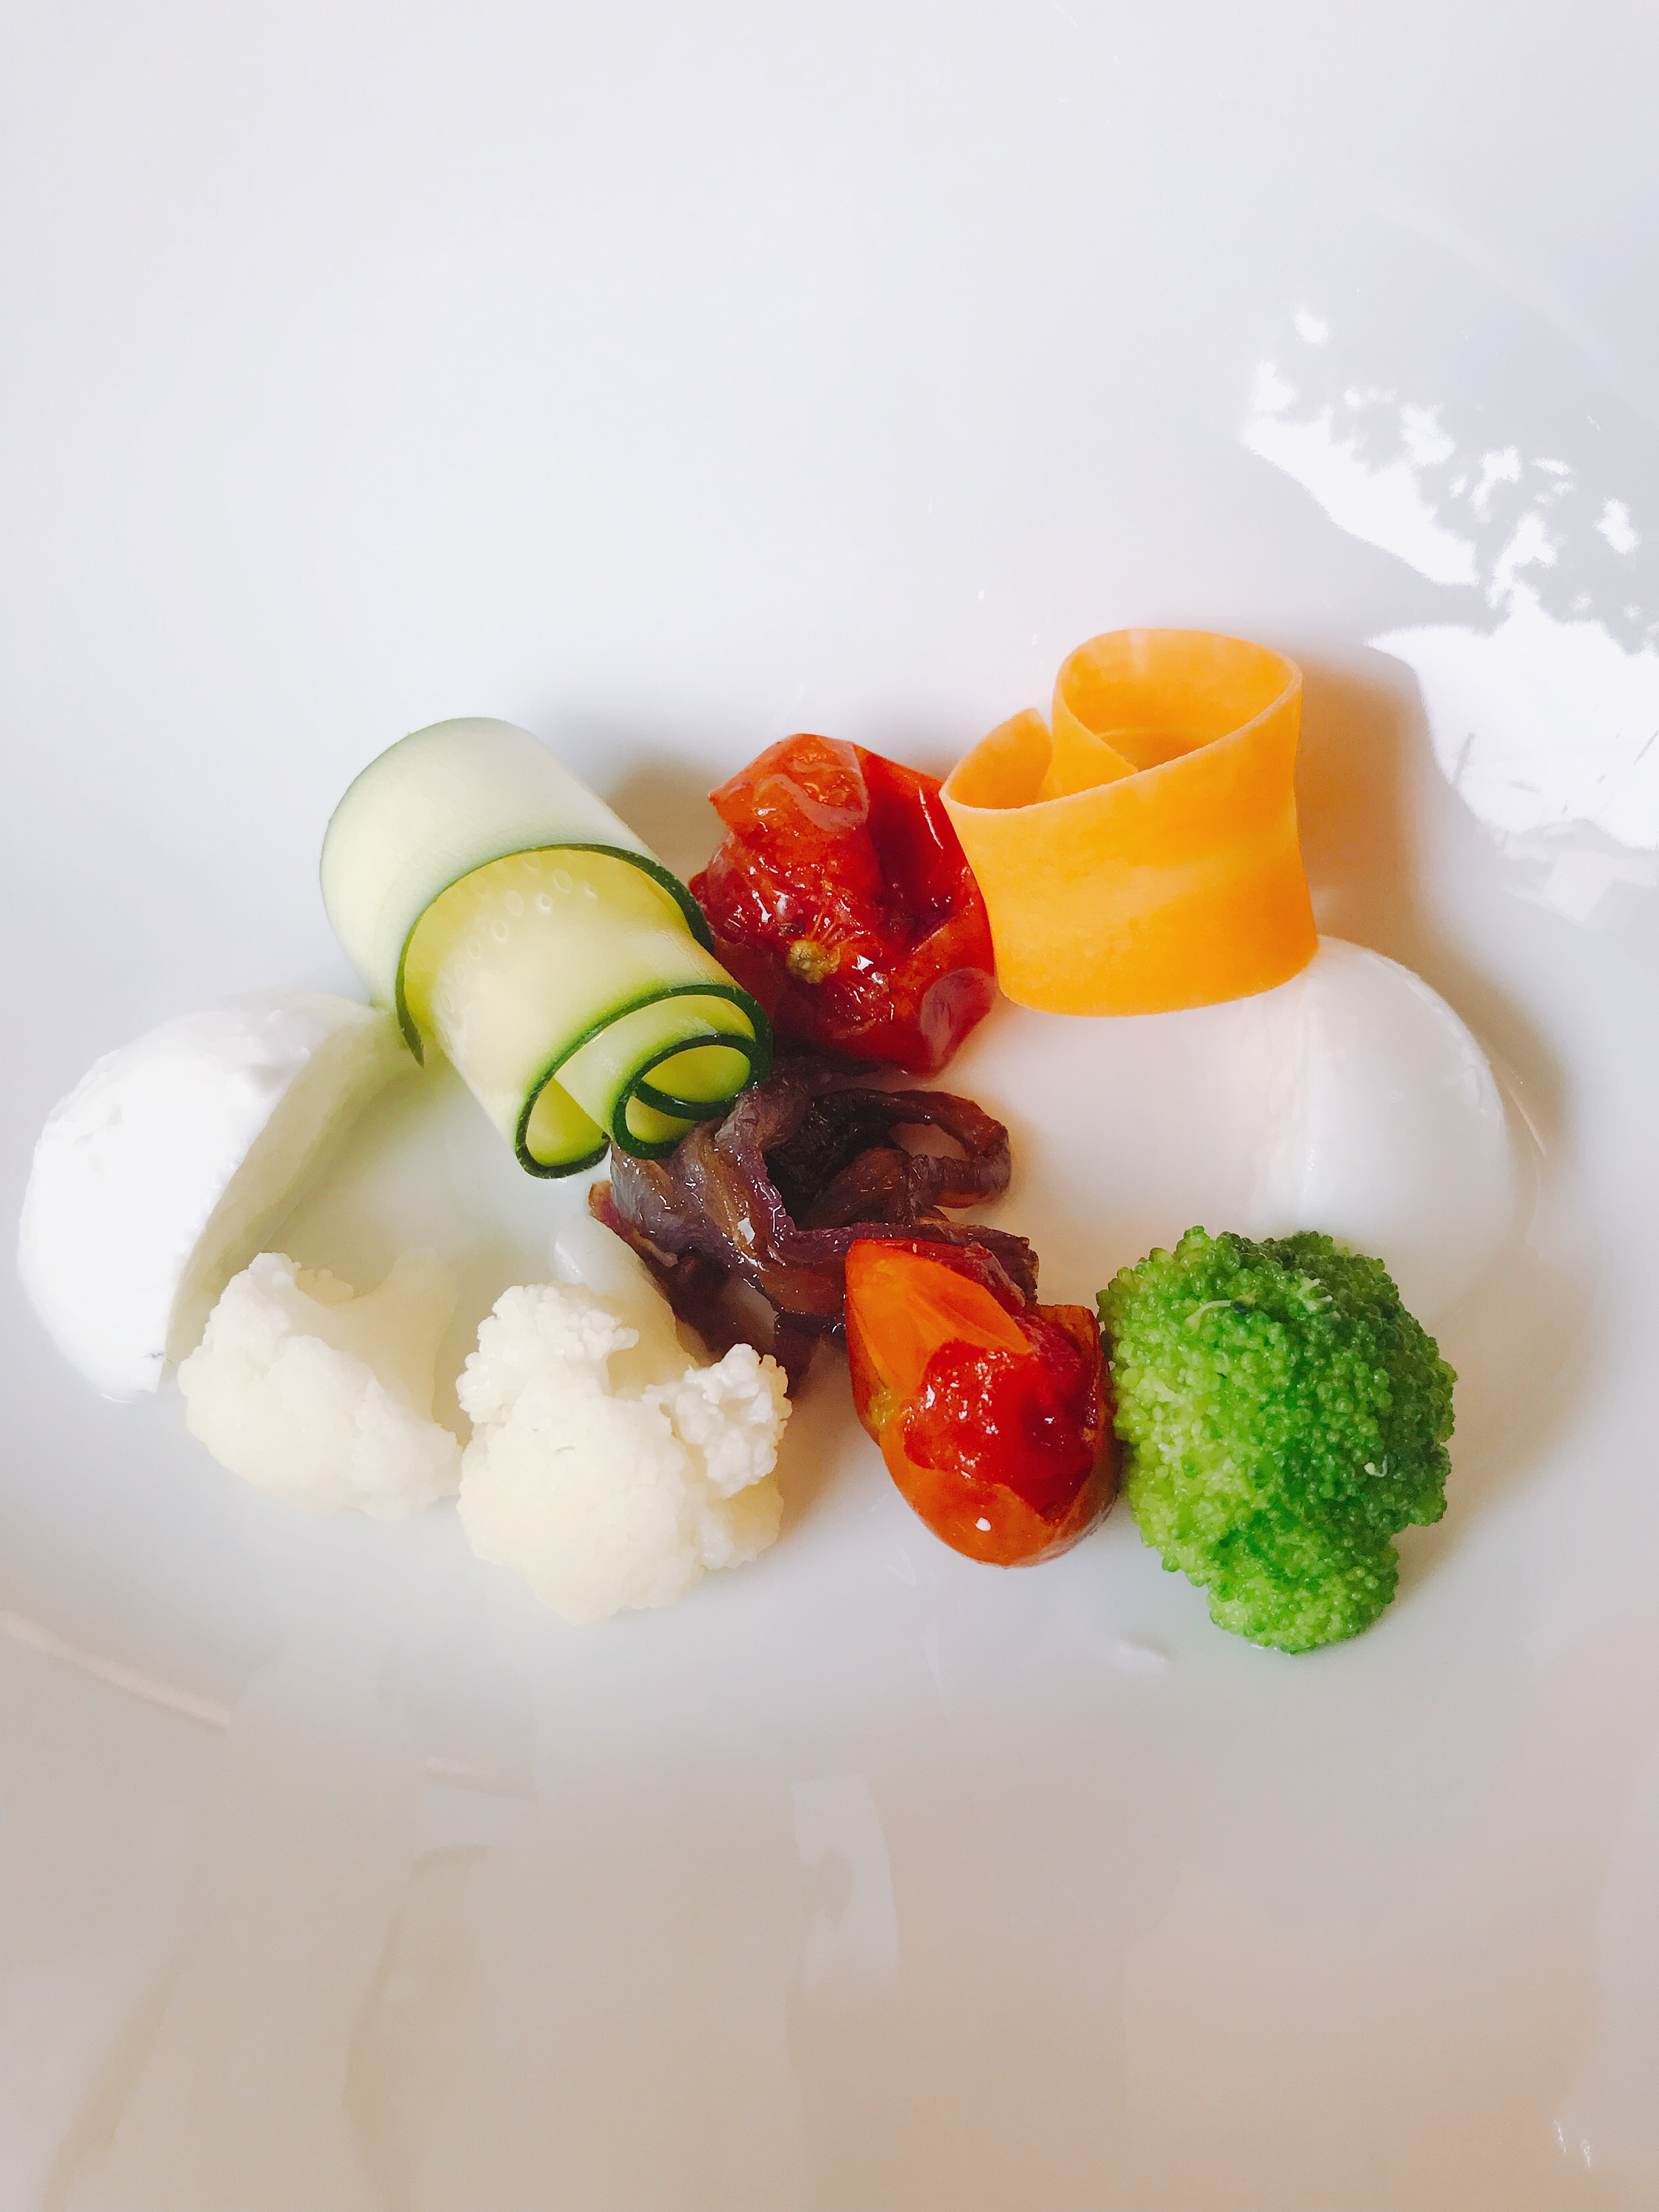 Nero: Buffalo Mozzarella, Tomato, Carrot, Broccoli (Before)